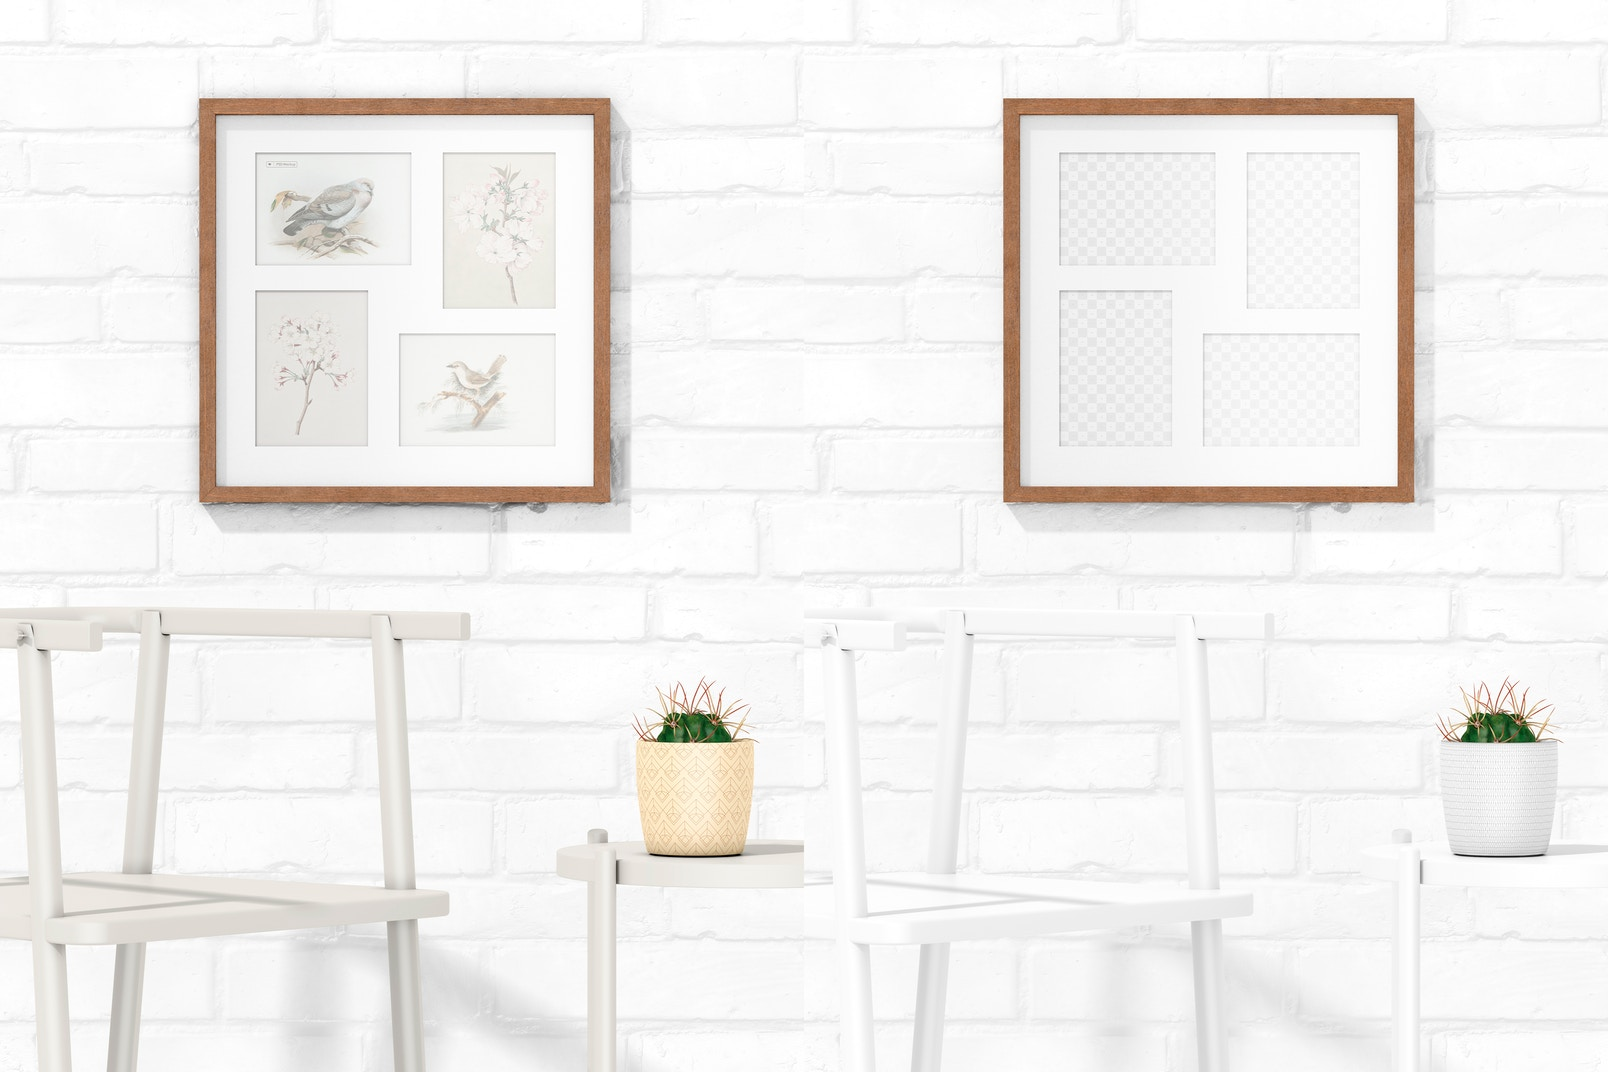 3:4 Multiple Photo Frame with Chair Mockup